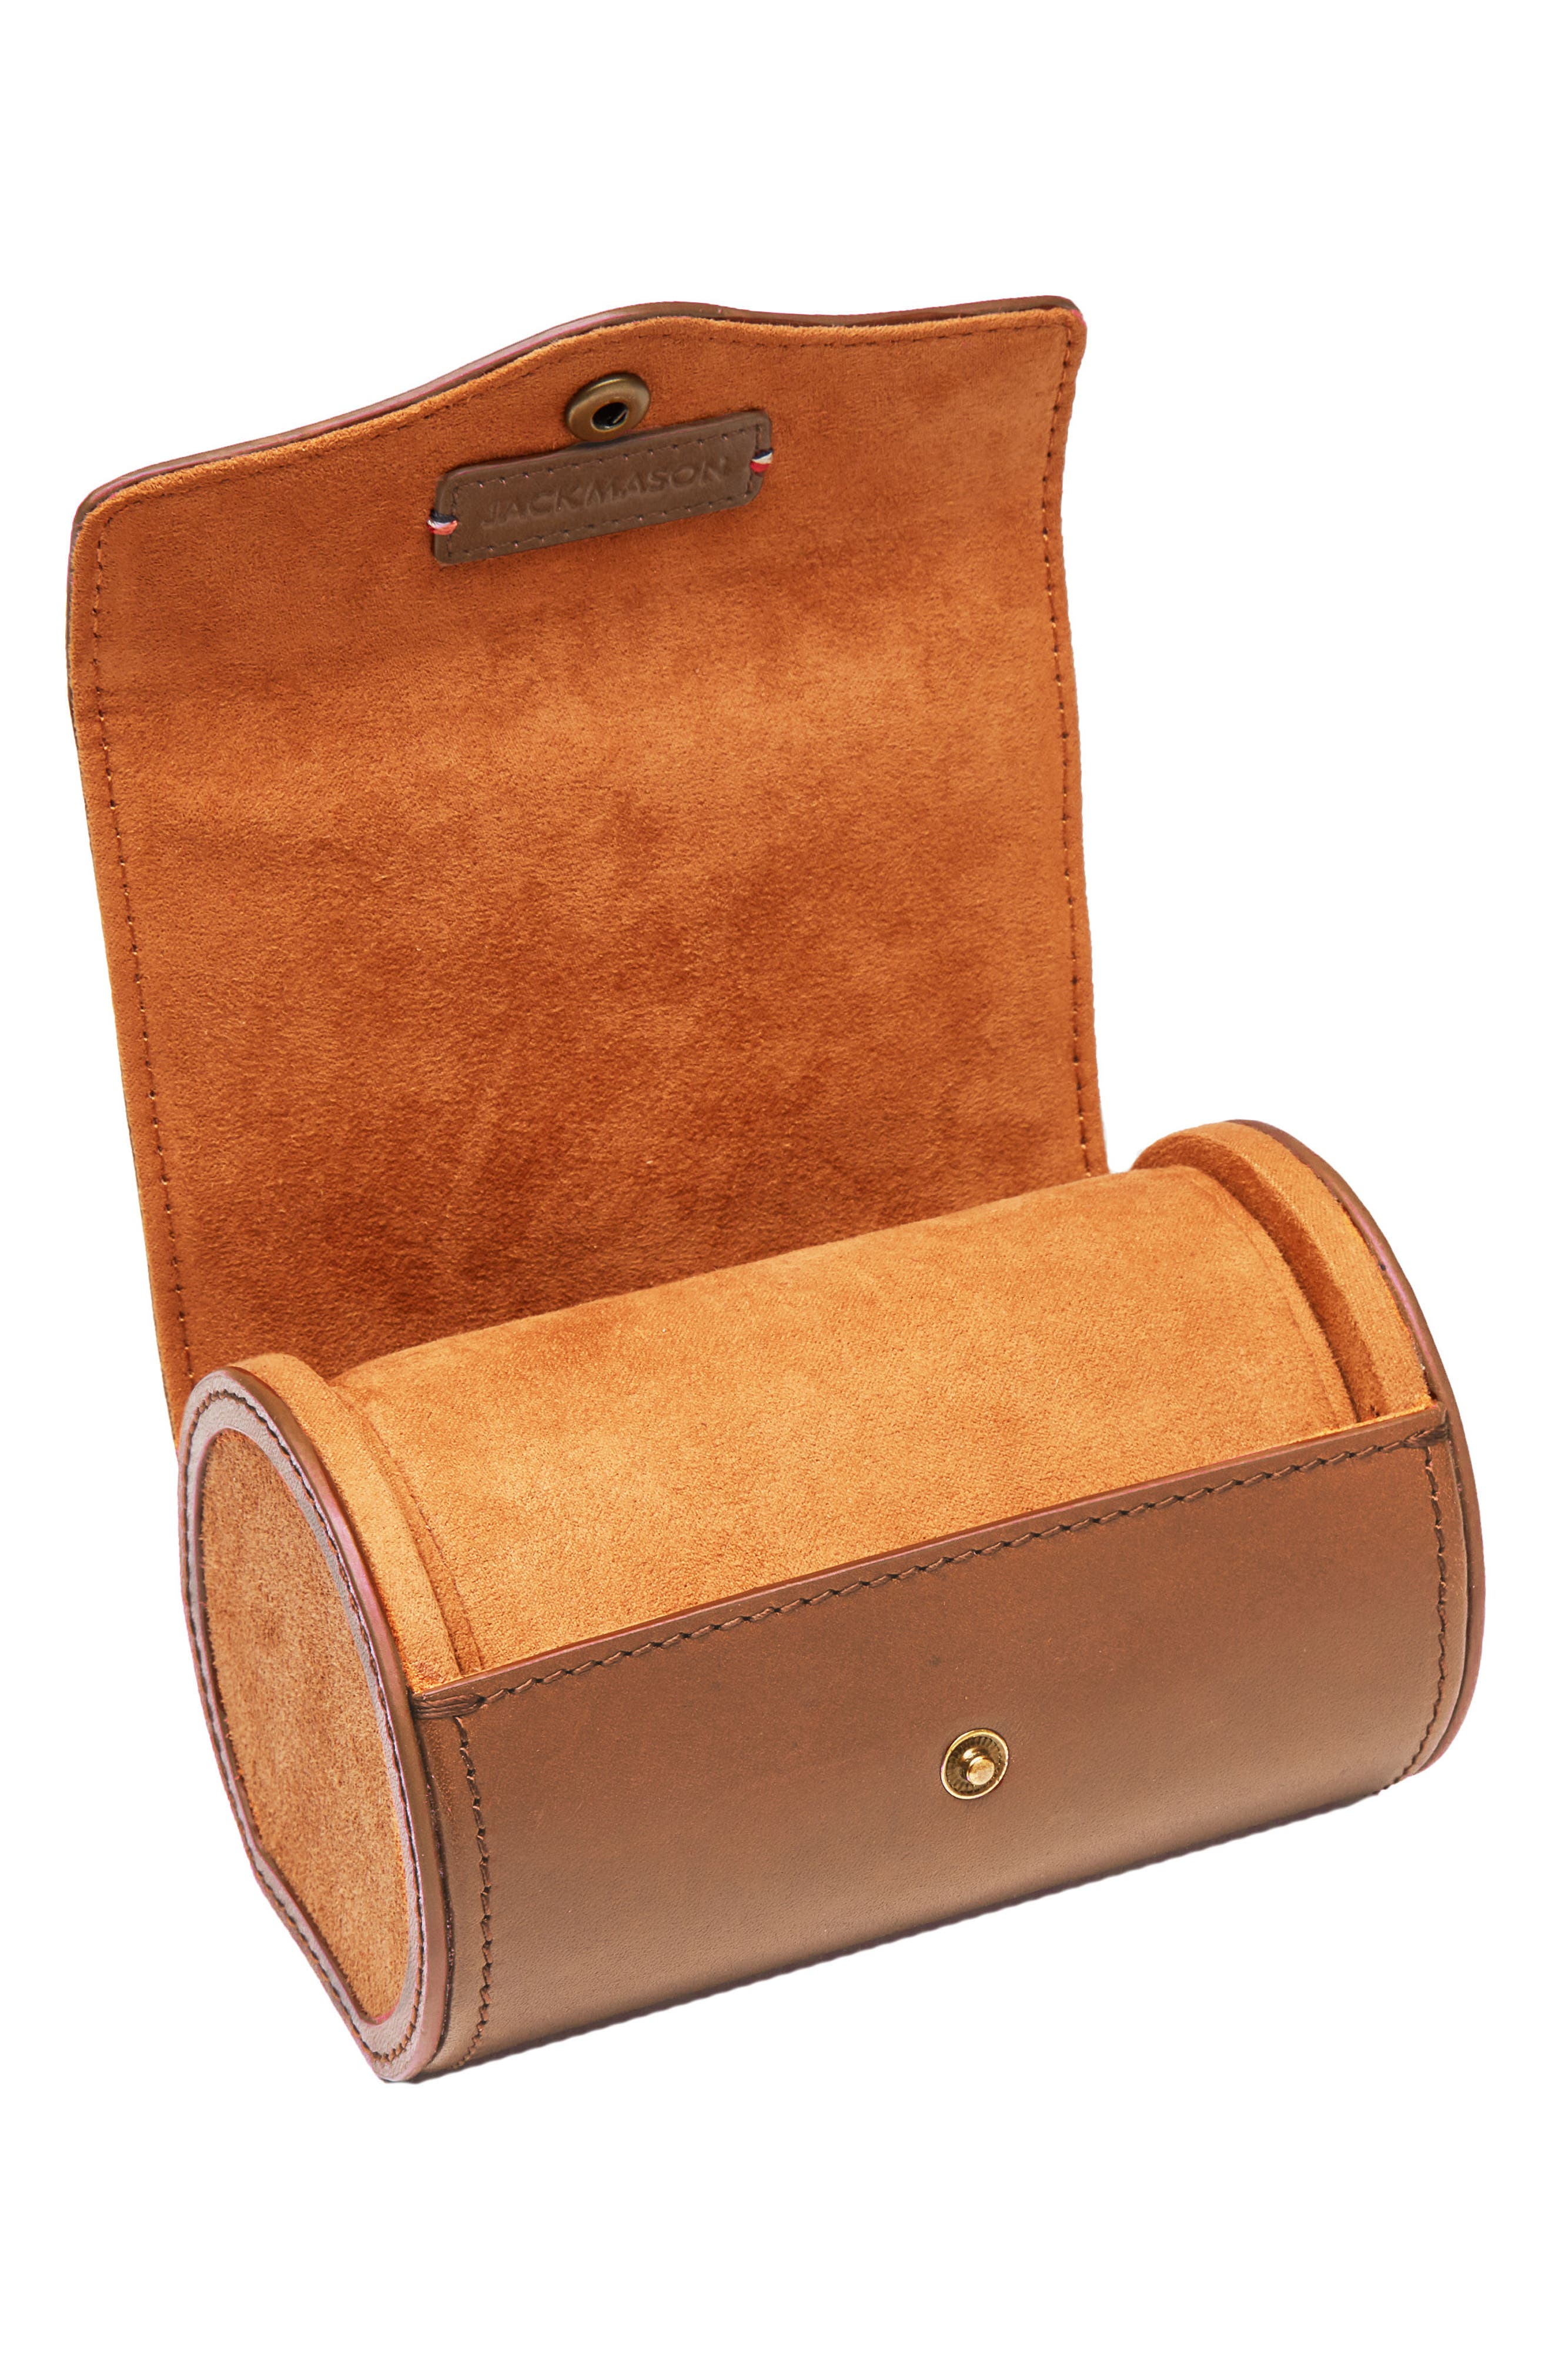 Watch Roll Case,                             Alternate thumbnail 2, color,                             Tan